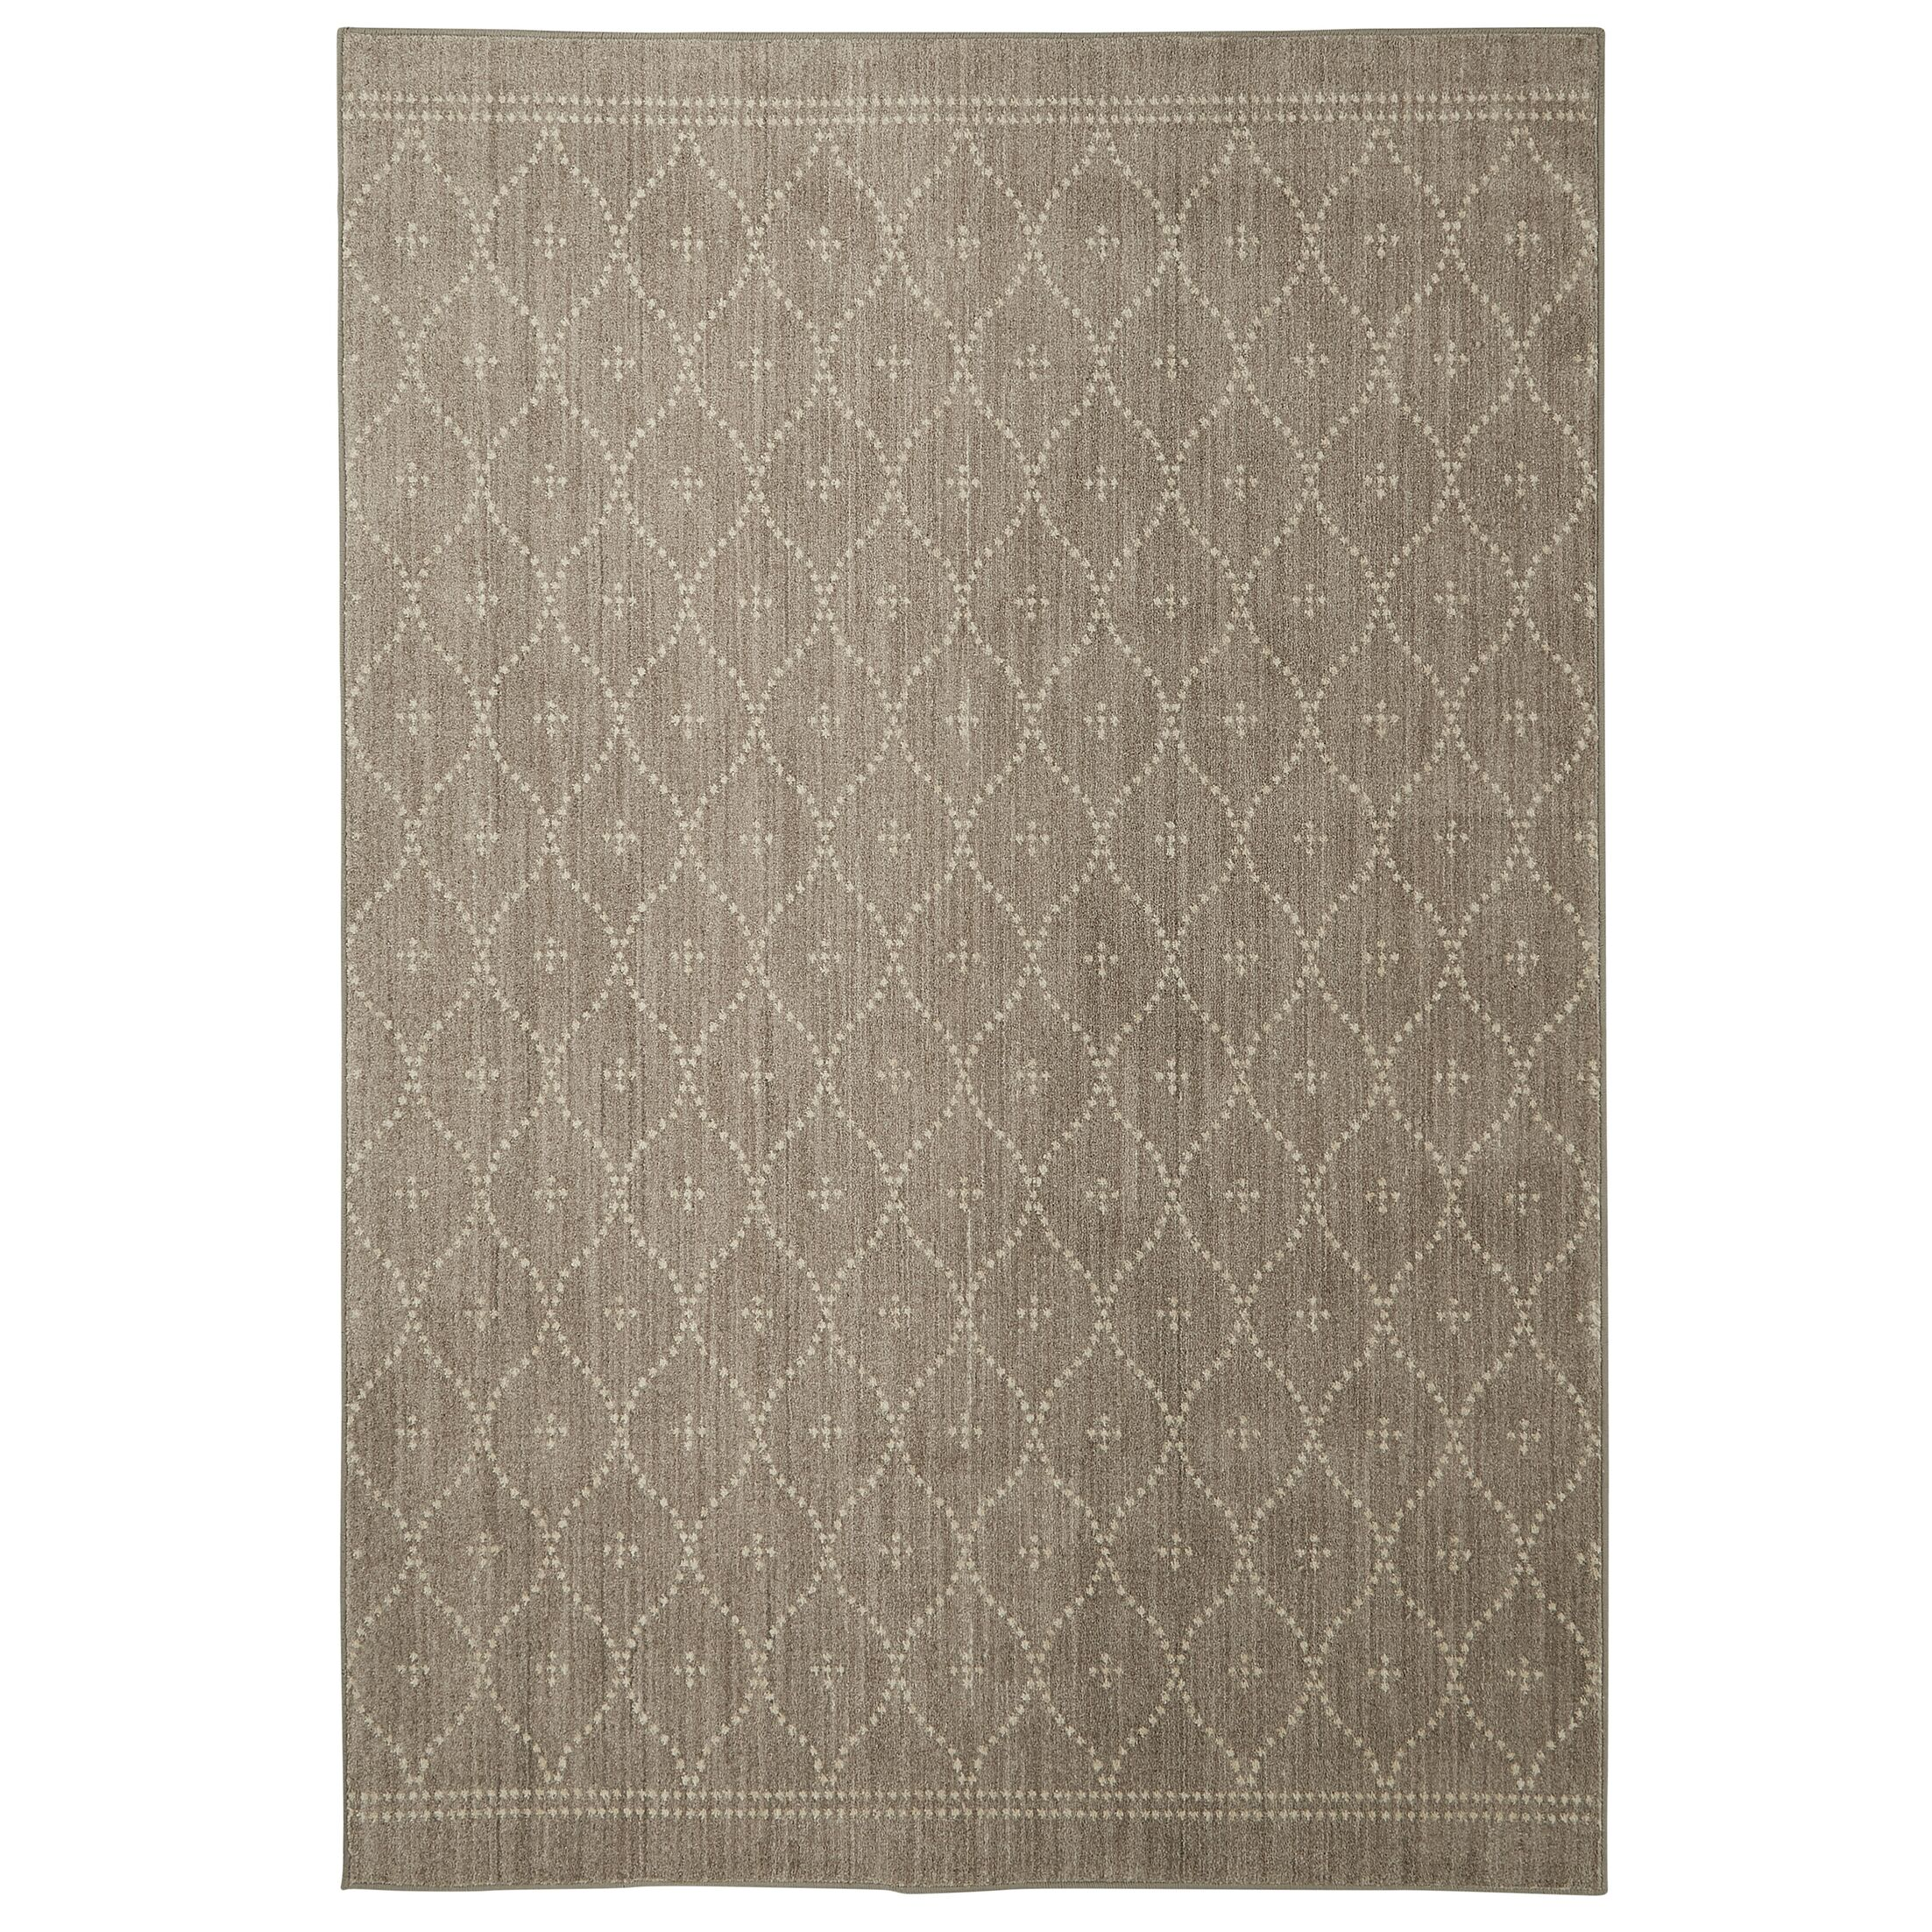 Carlito Palais Beige Indoor Area Rug Rug Size: Rectangle 5 'x 8'